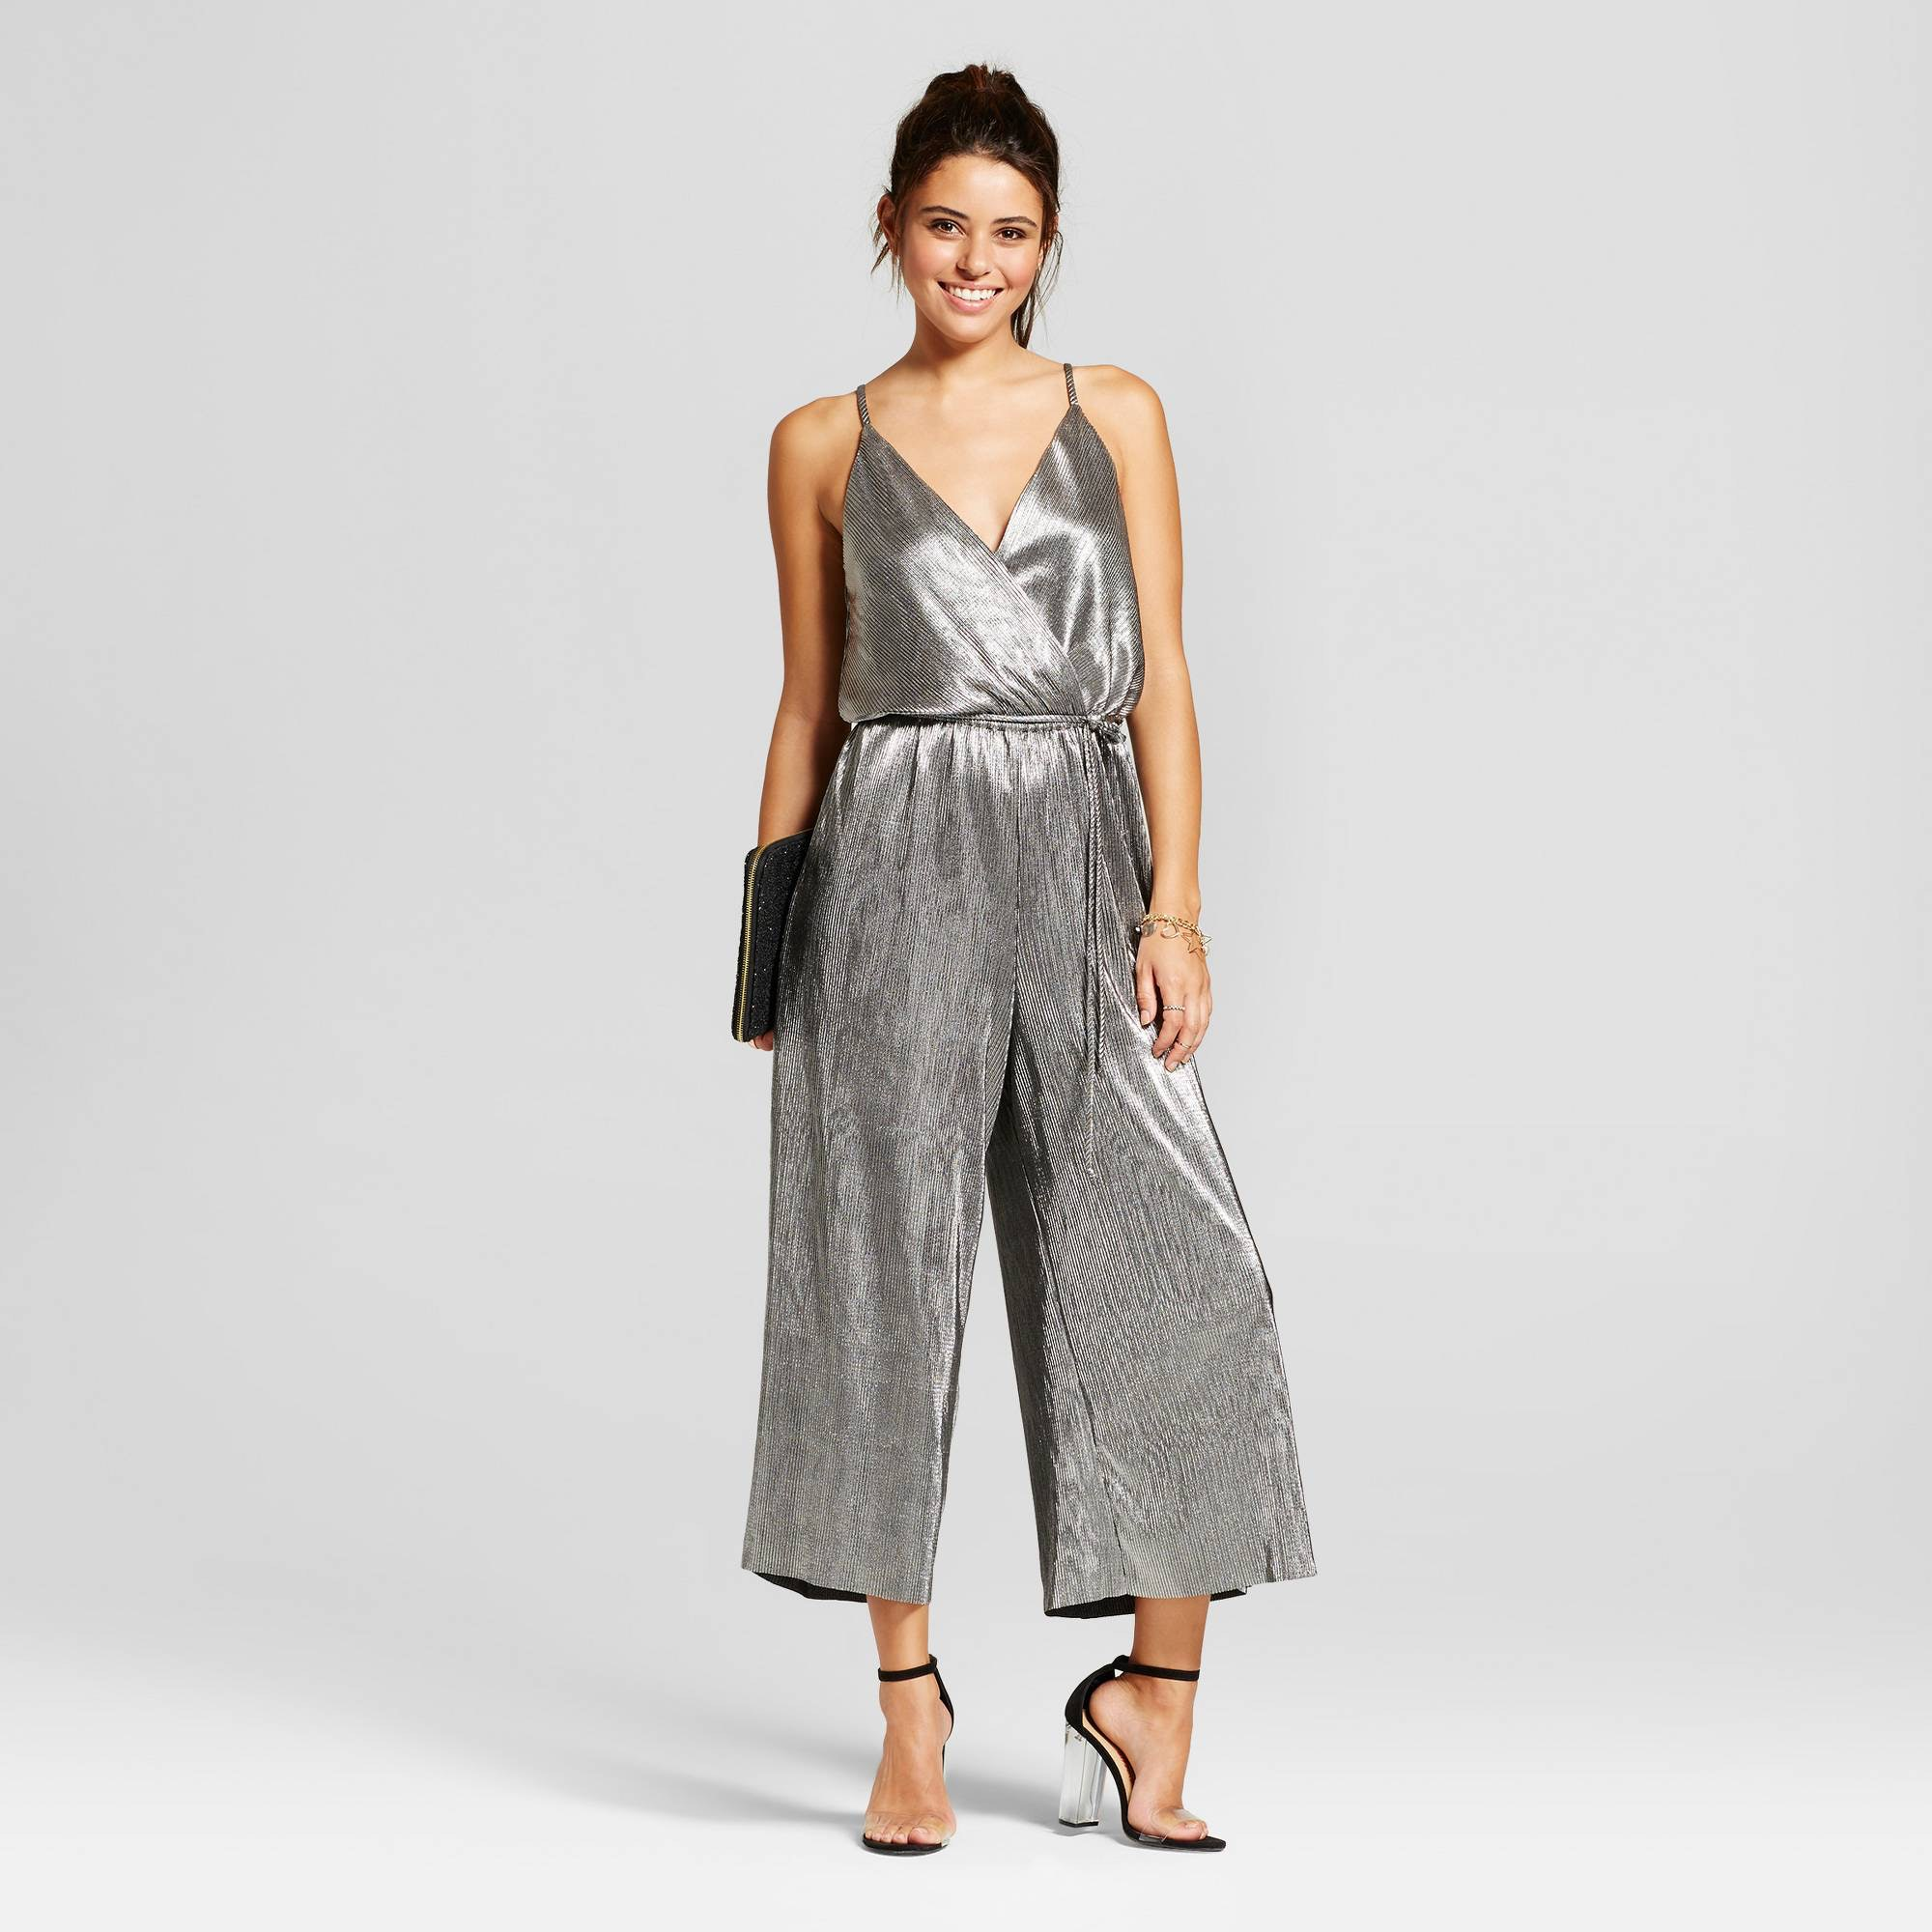 e73935d398e 16 Dressy Jumpsuits To Wear To All Your Holiday Parties